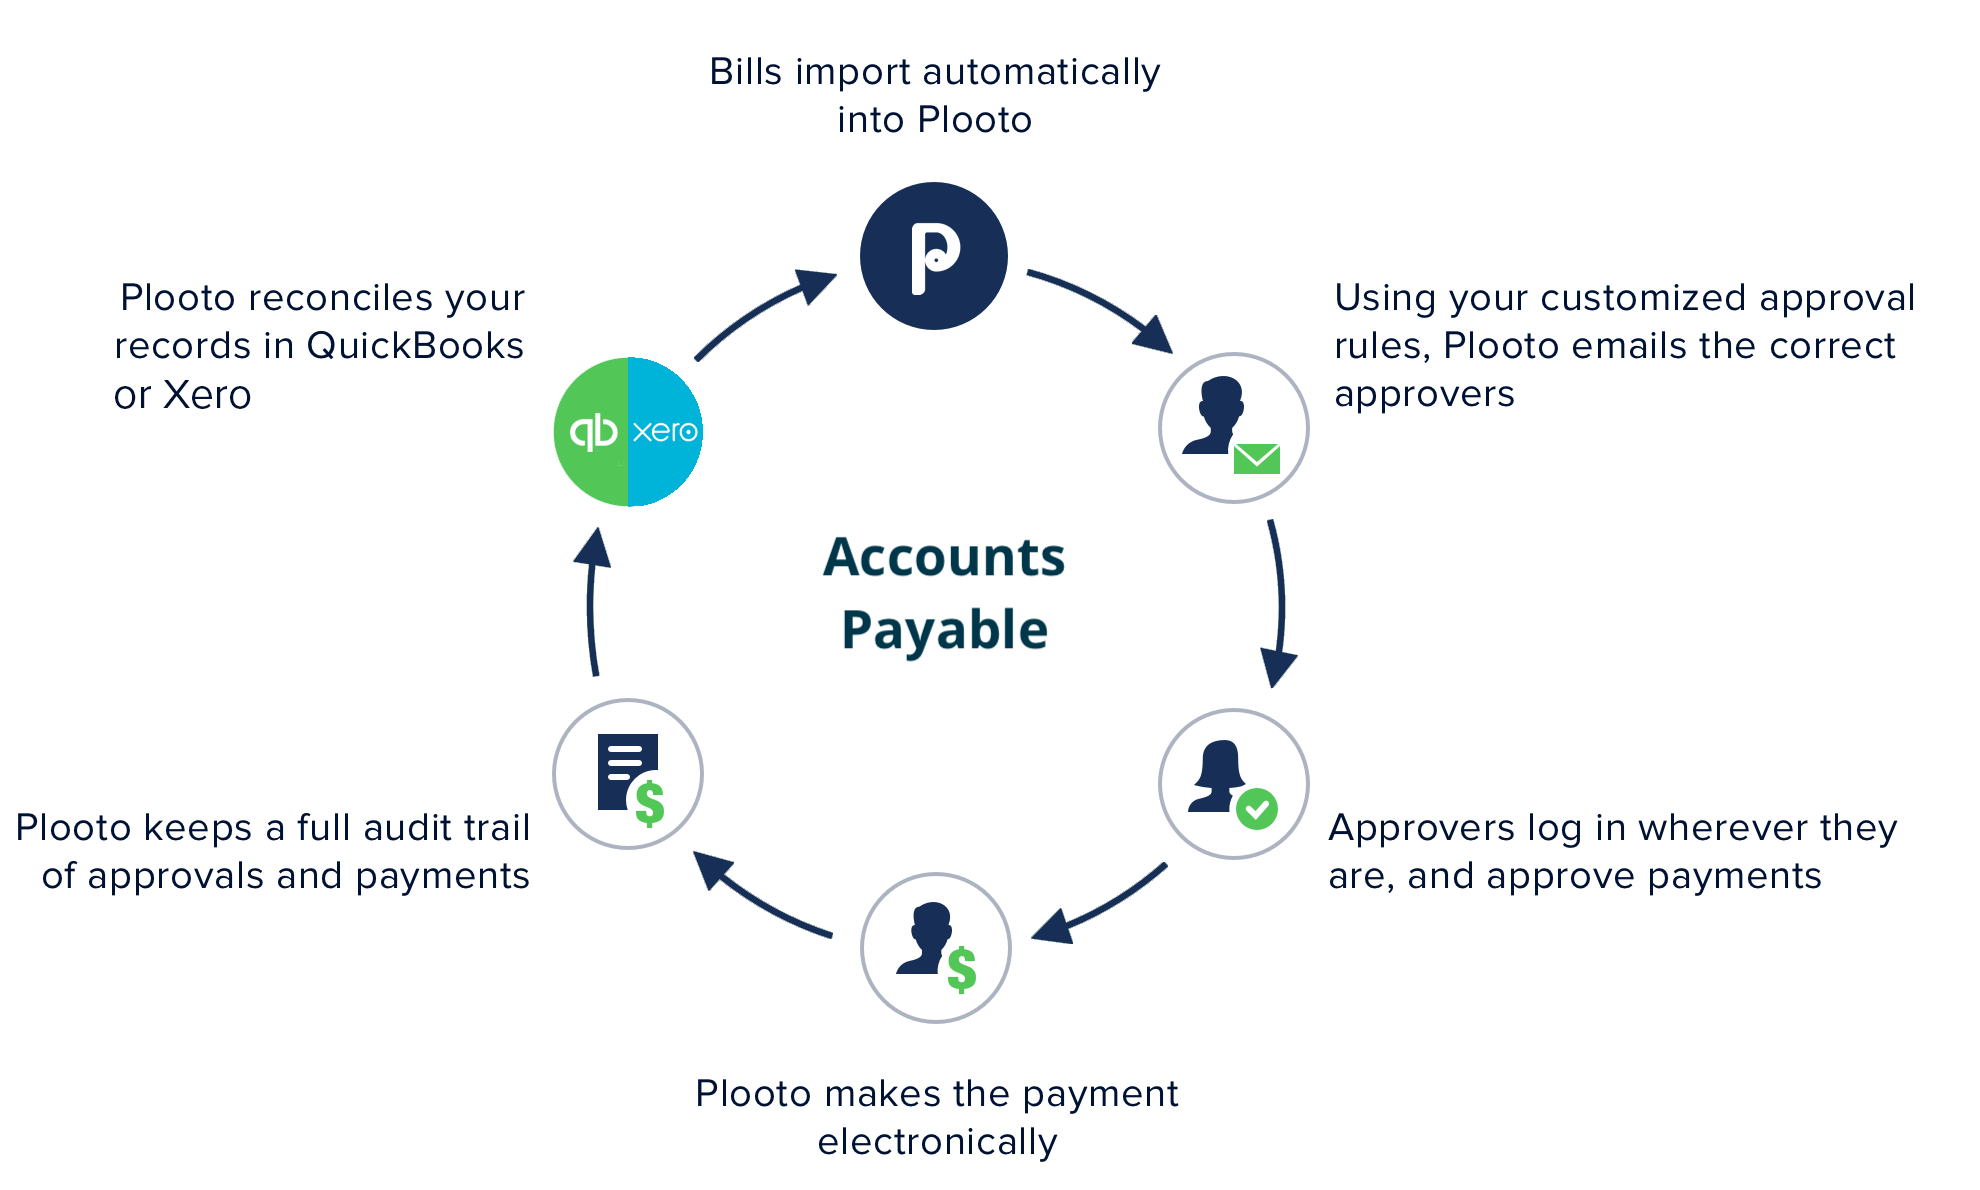 Plooto Integration | With Plooto's two-way sync with QuickBooks and Xero, automate accounting payable processes